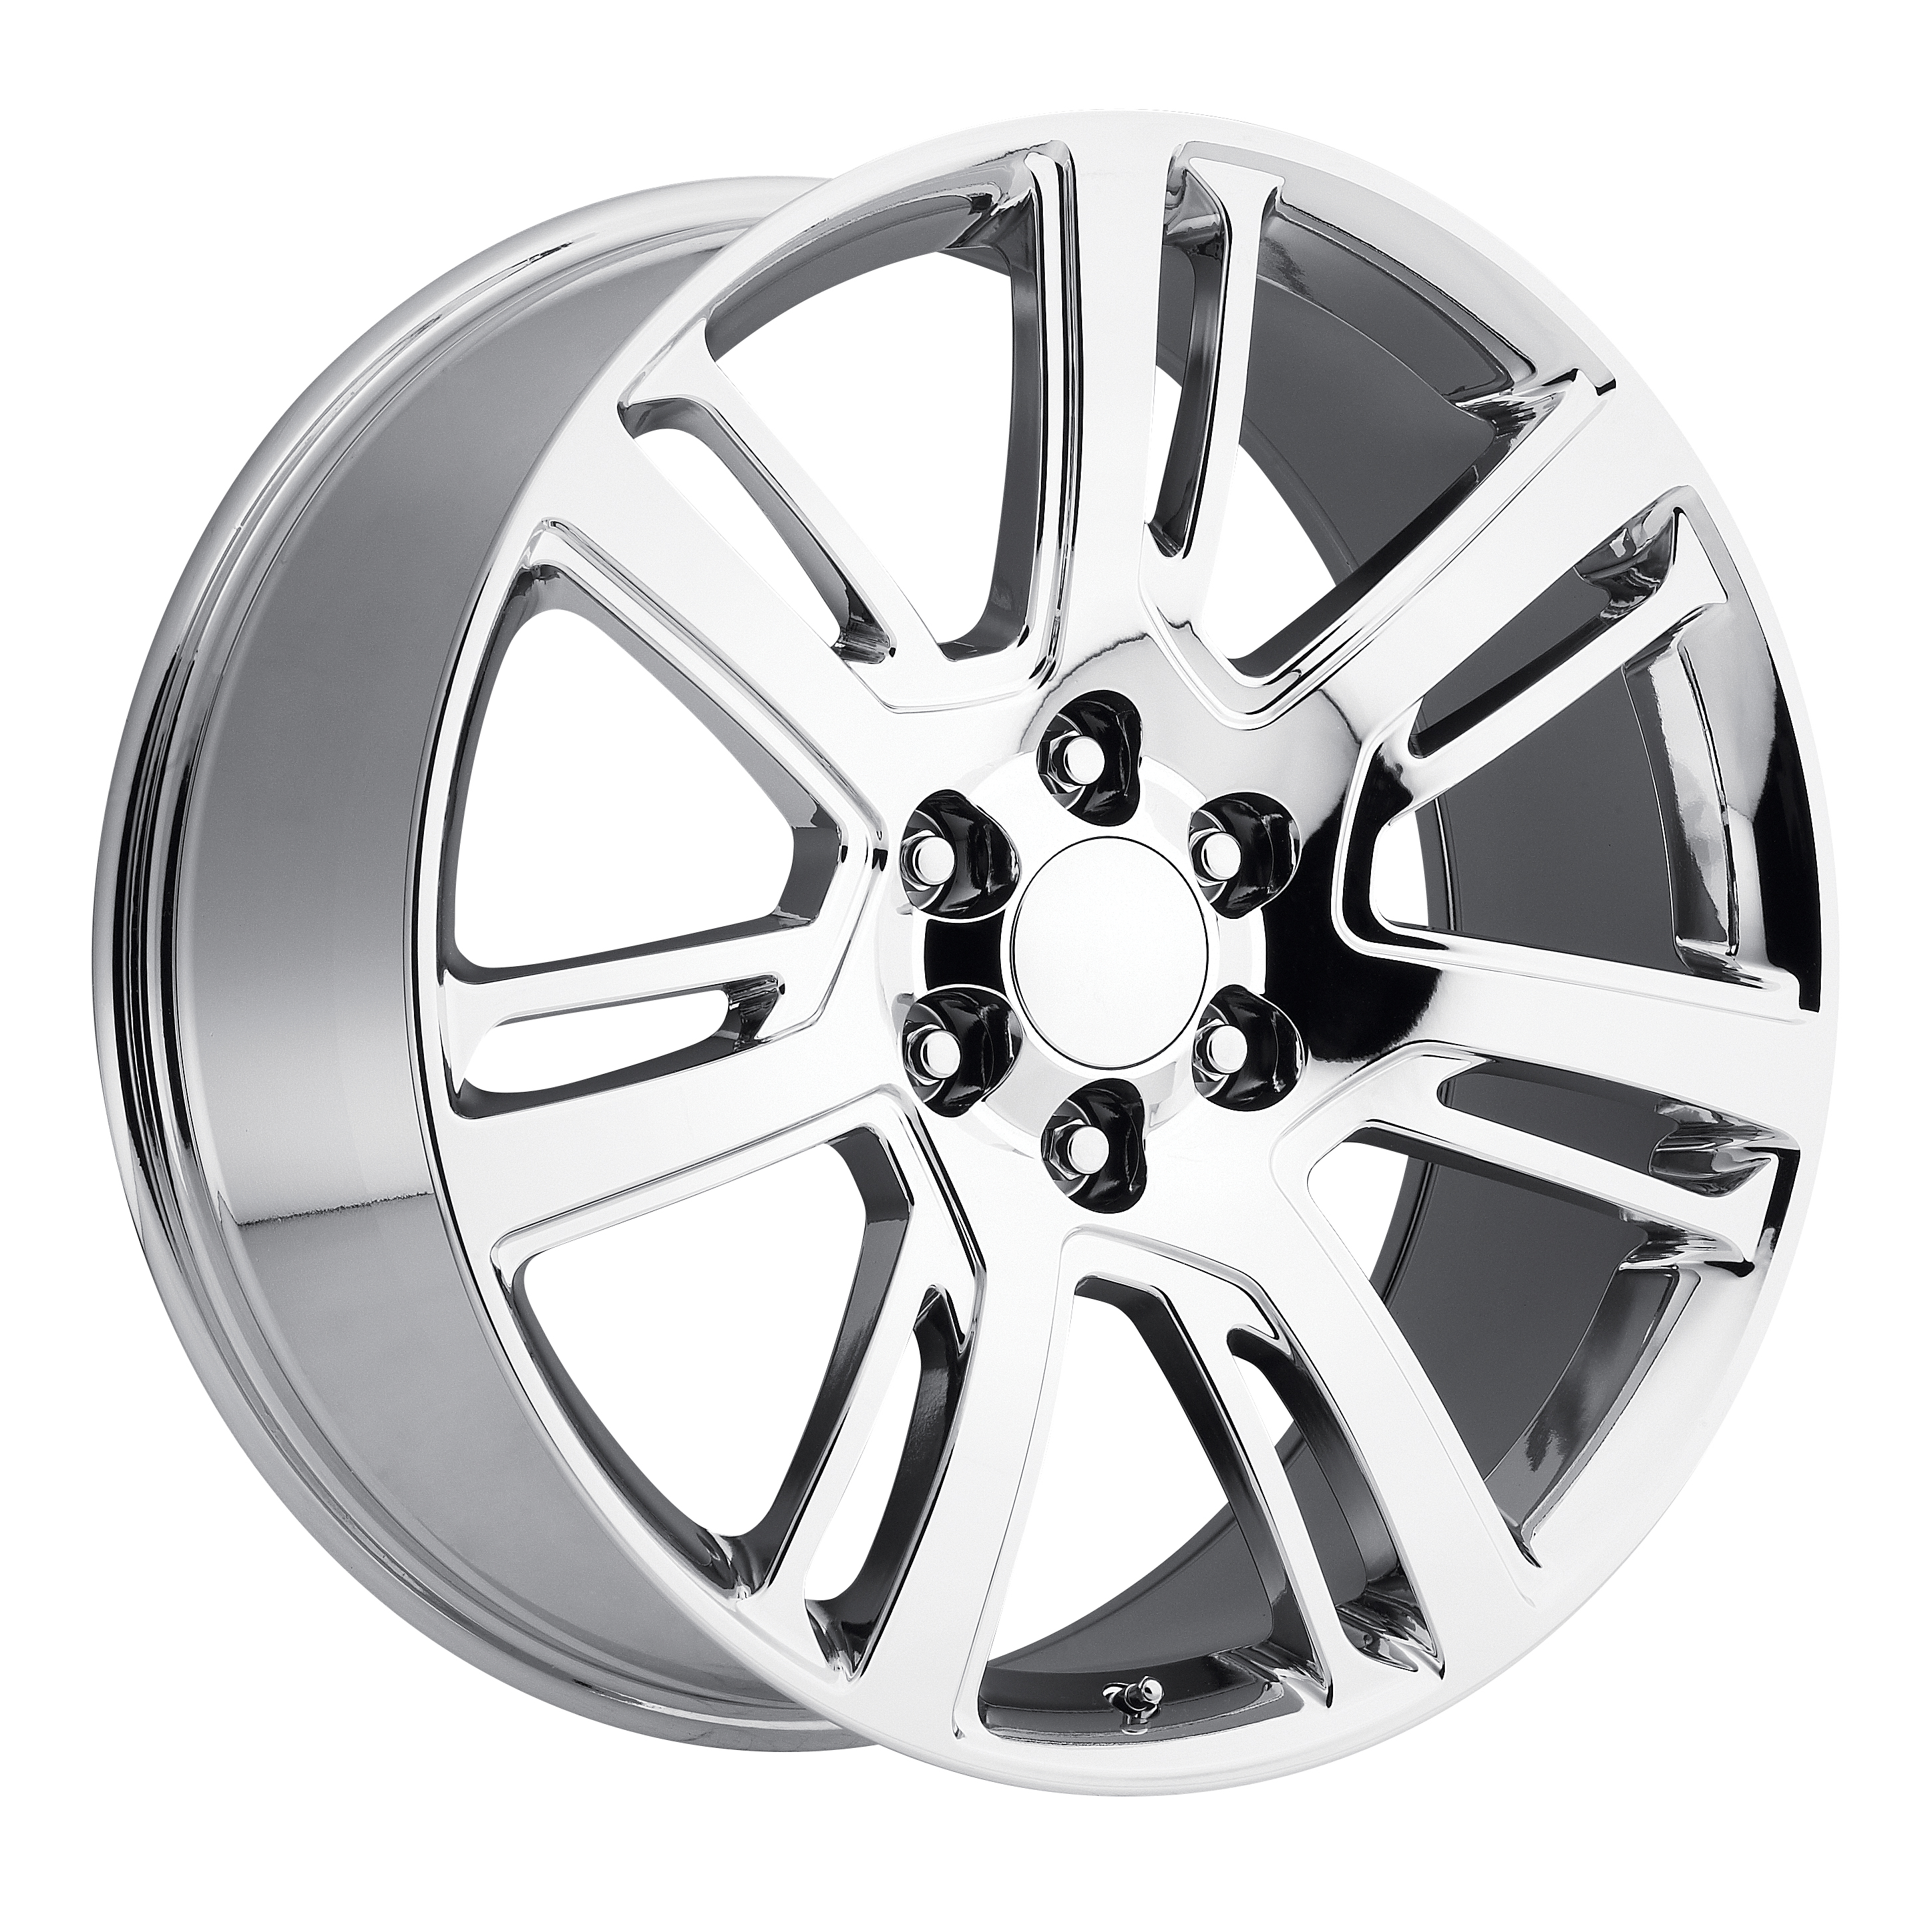 rims car download and inch best cts tires deville for updates image of on cadillac rim